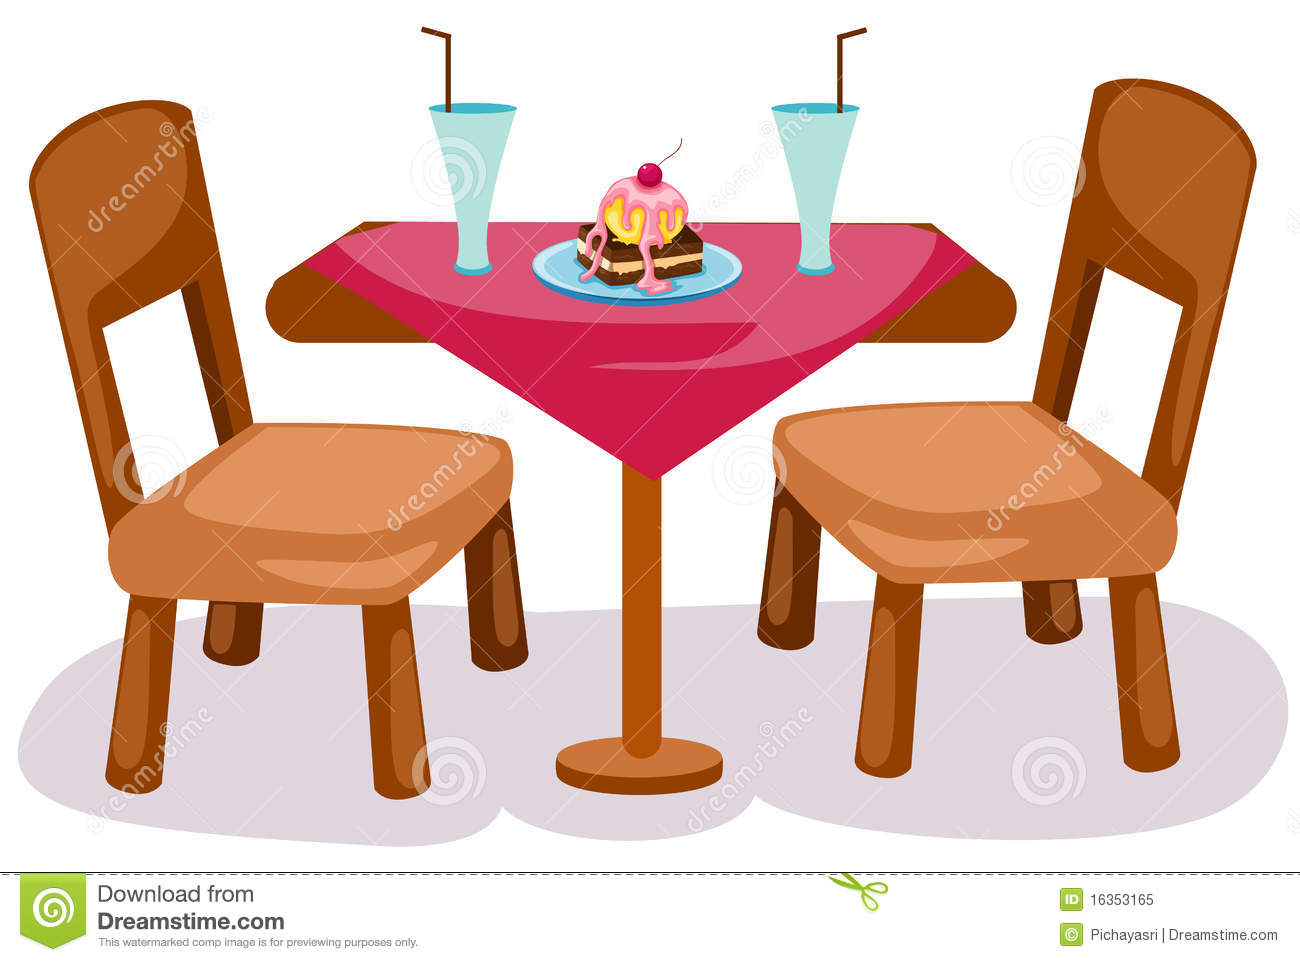 Chair at table clipart jpg library library Table And Chair Clipart & Free Clip Art Images #34883 - Clipartimage.com jpg library library